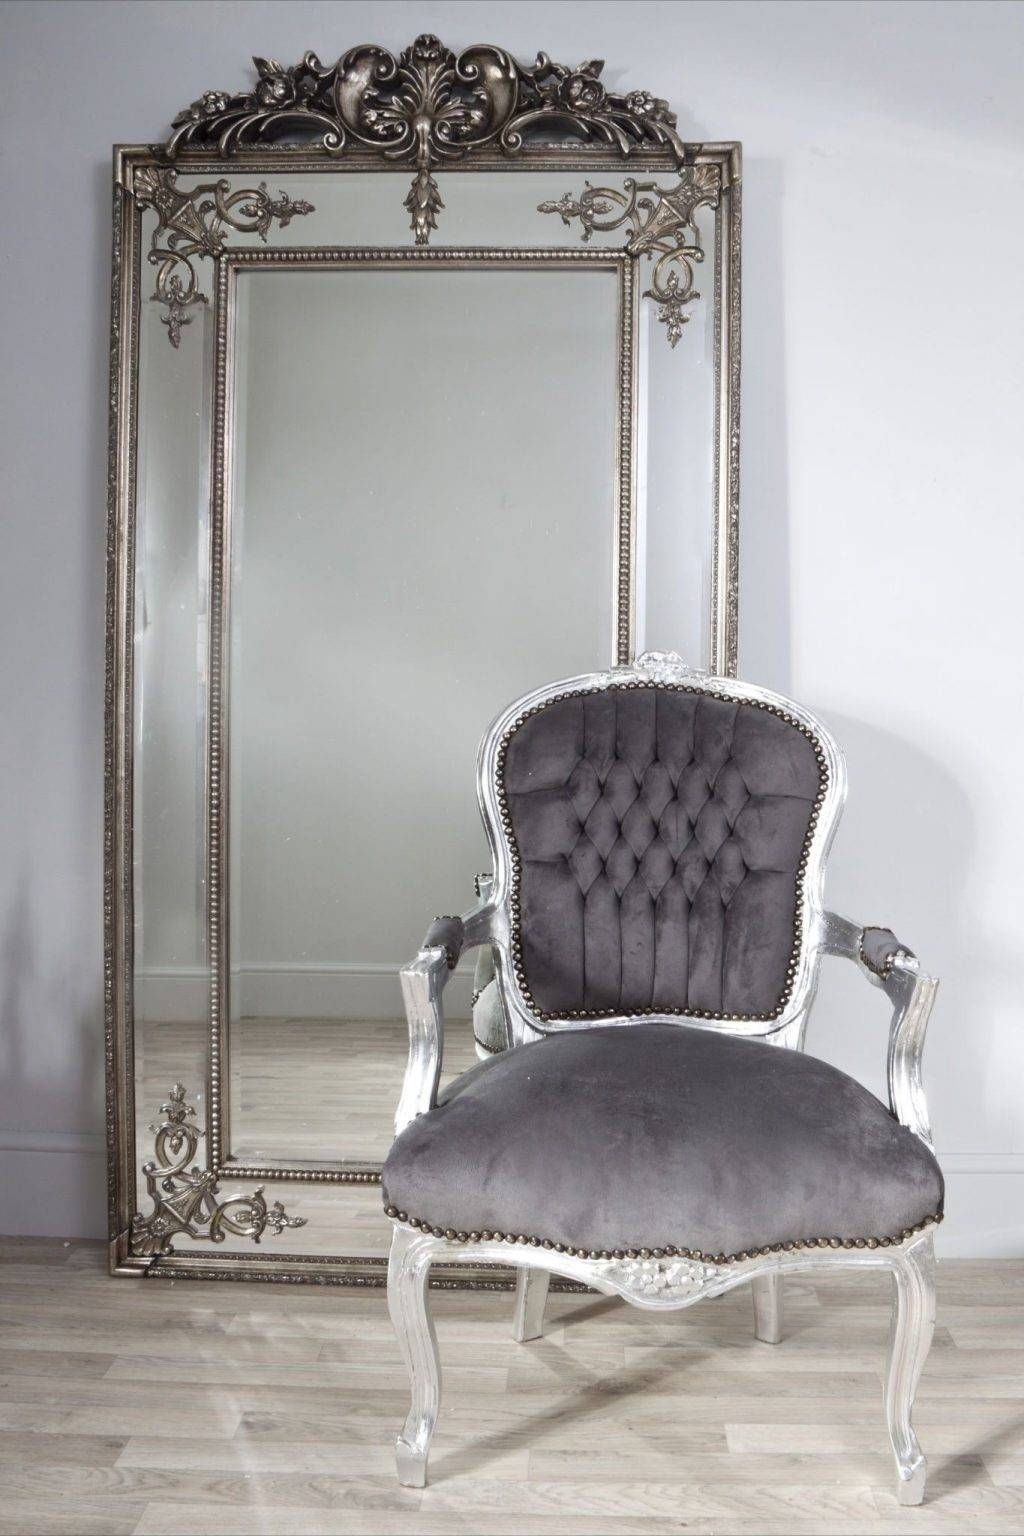 Giant Mirrors For Sale 33 Beautiful Decoration Also Large Wall for Large Ornate Silver Mirrors (Image 9 of 25)